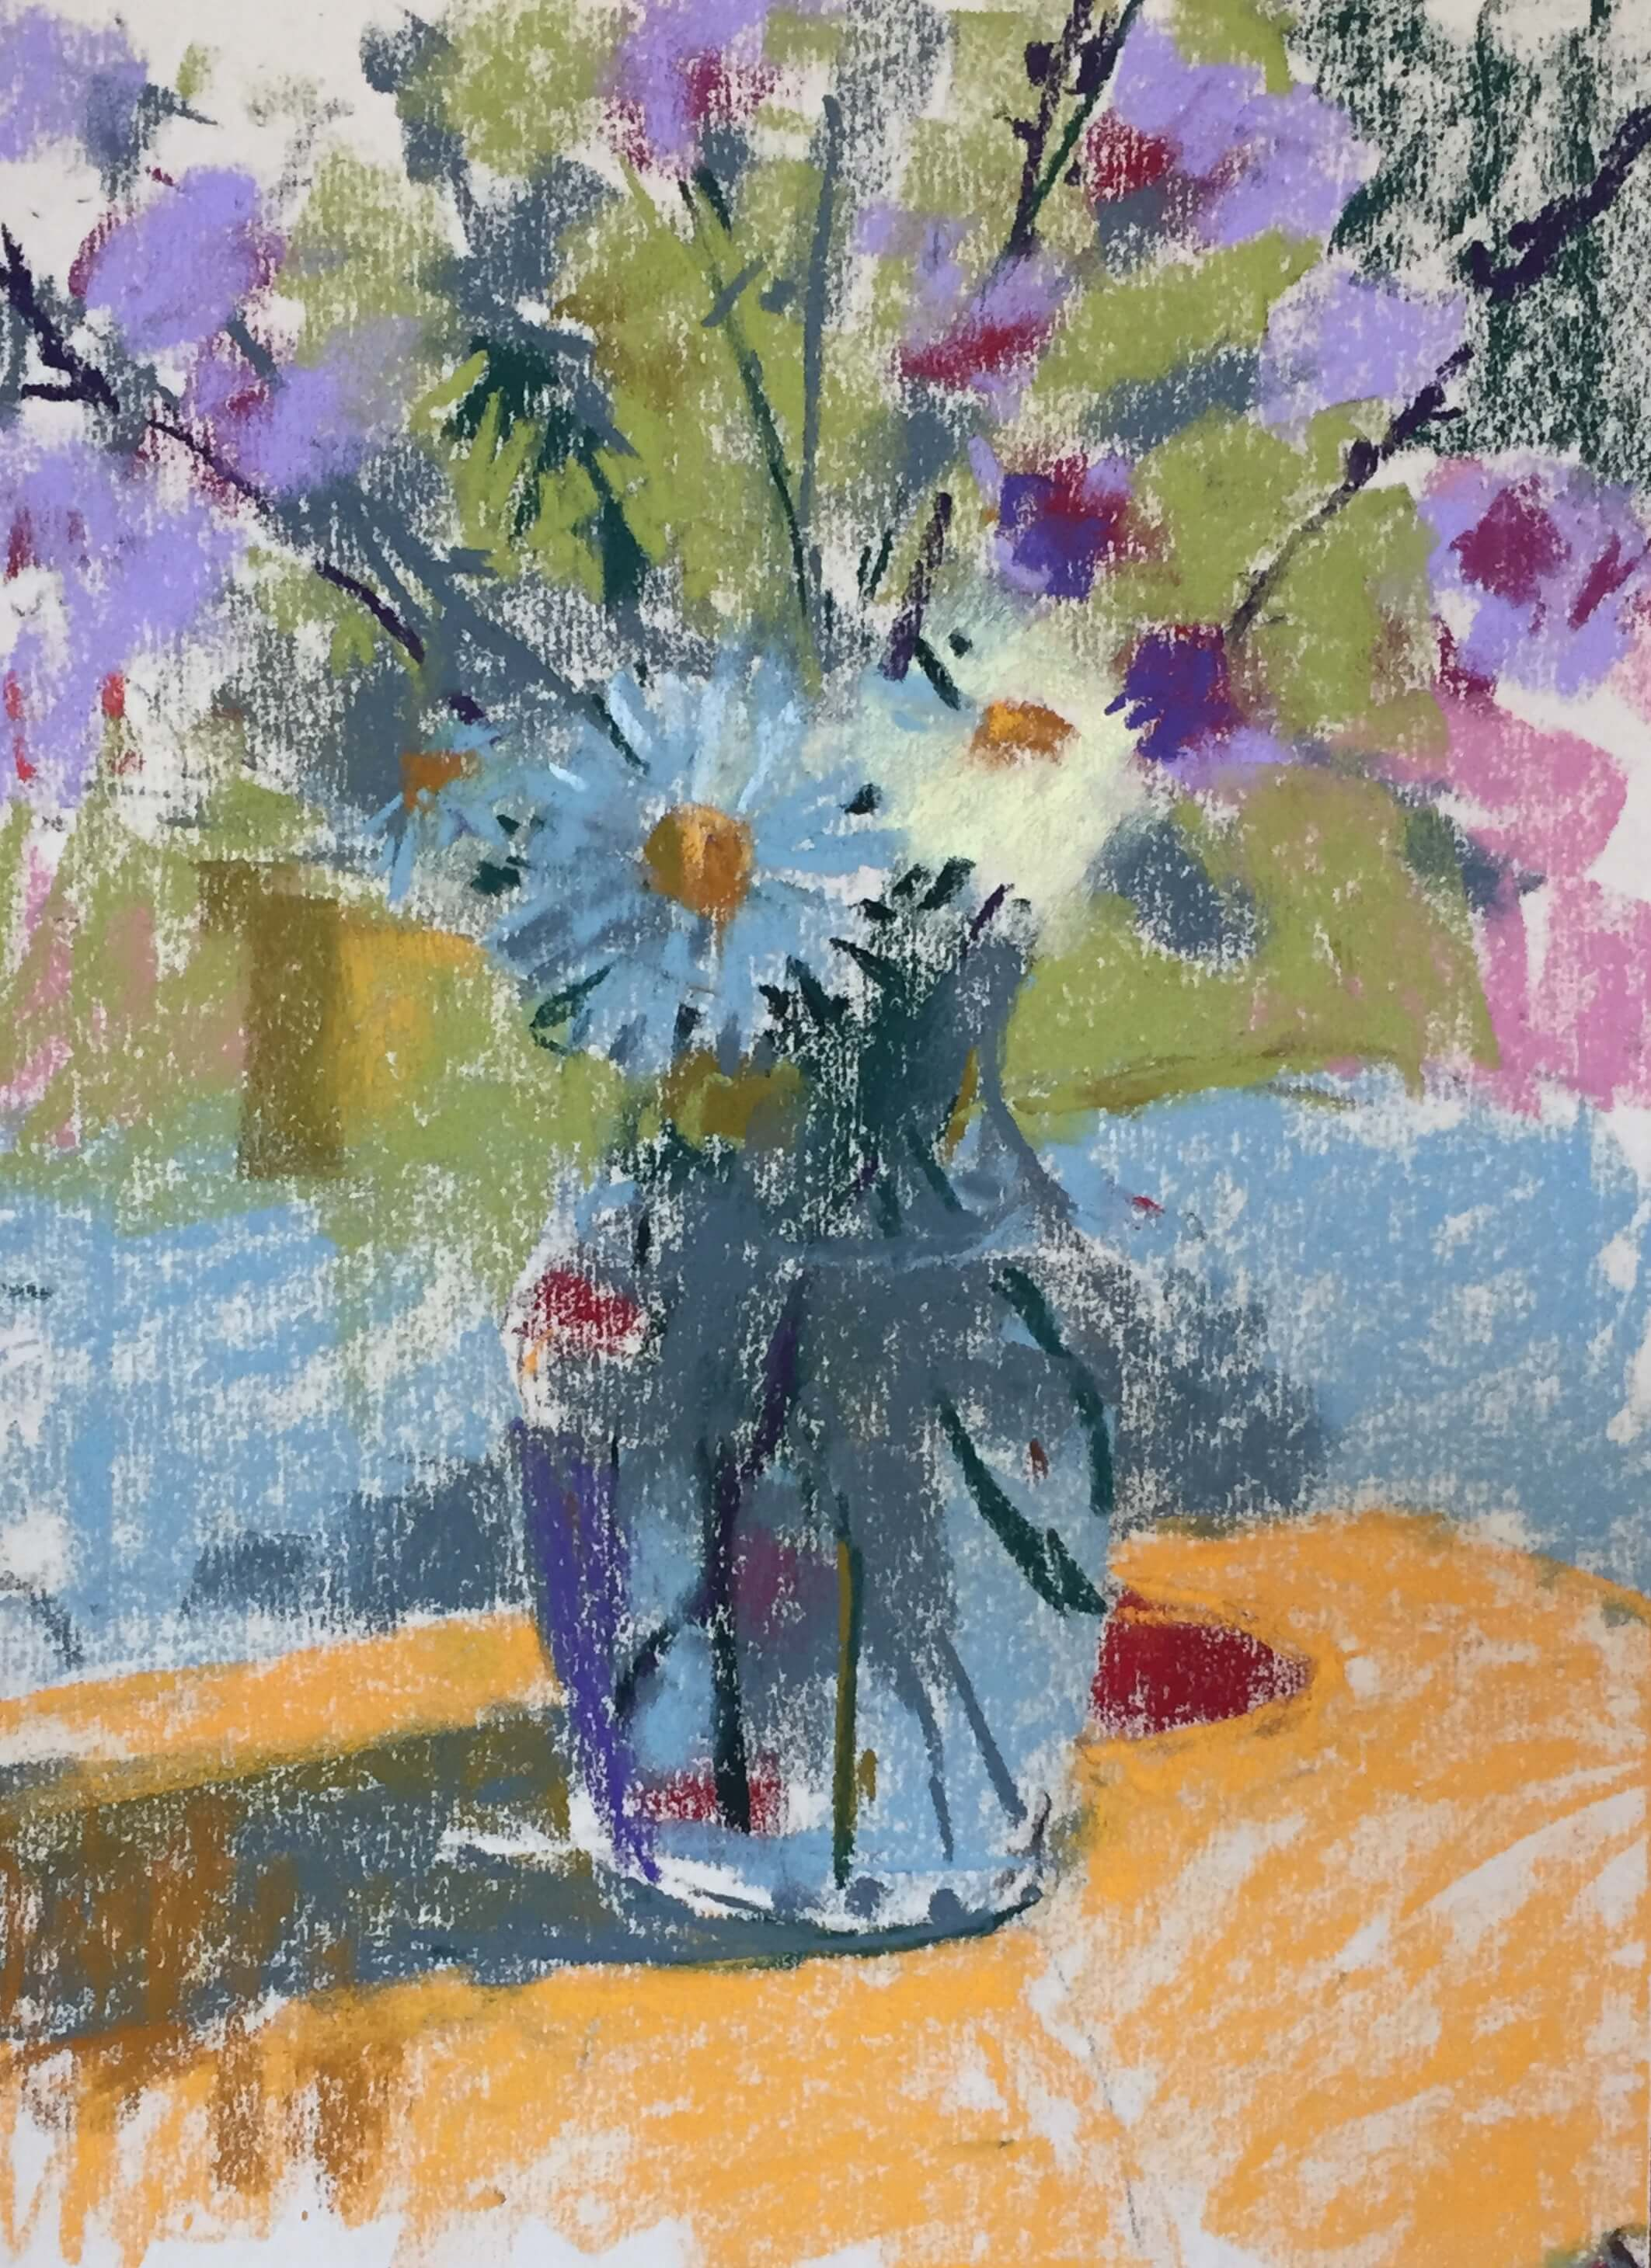 4. Added the darkest darks and began to refine some shapes - e.g. one of the daisies - using negative space. Summer Flowers in a Vase